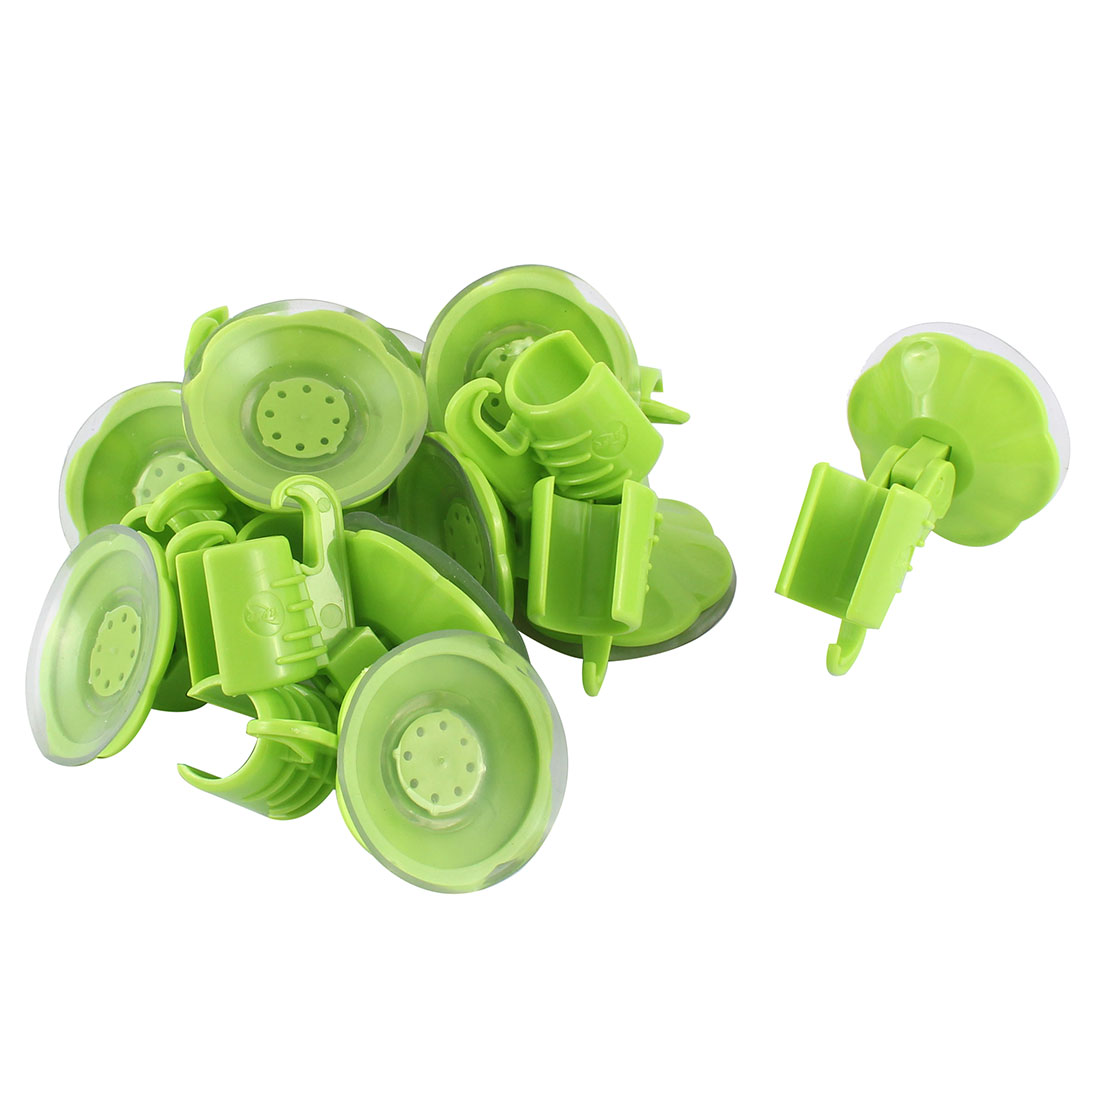 10pcs Attachable Bathroom Shower Head Holder Wall Suction Cup Bracket Green